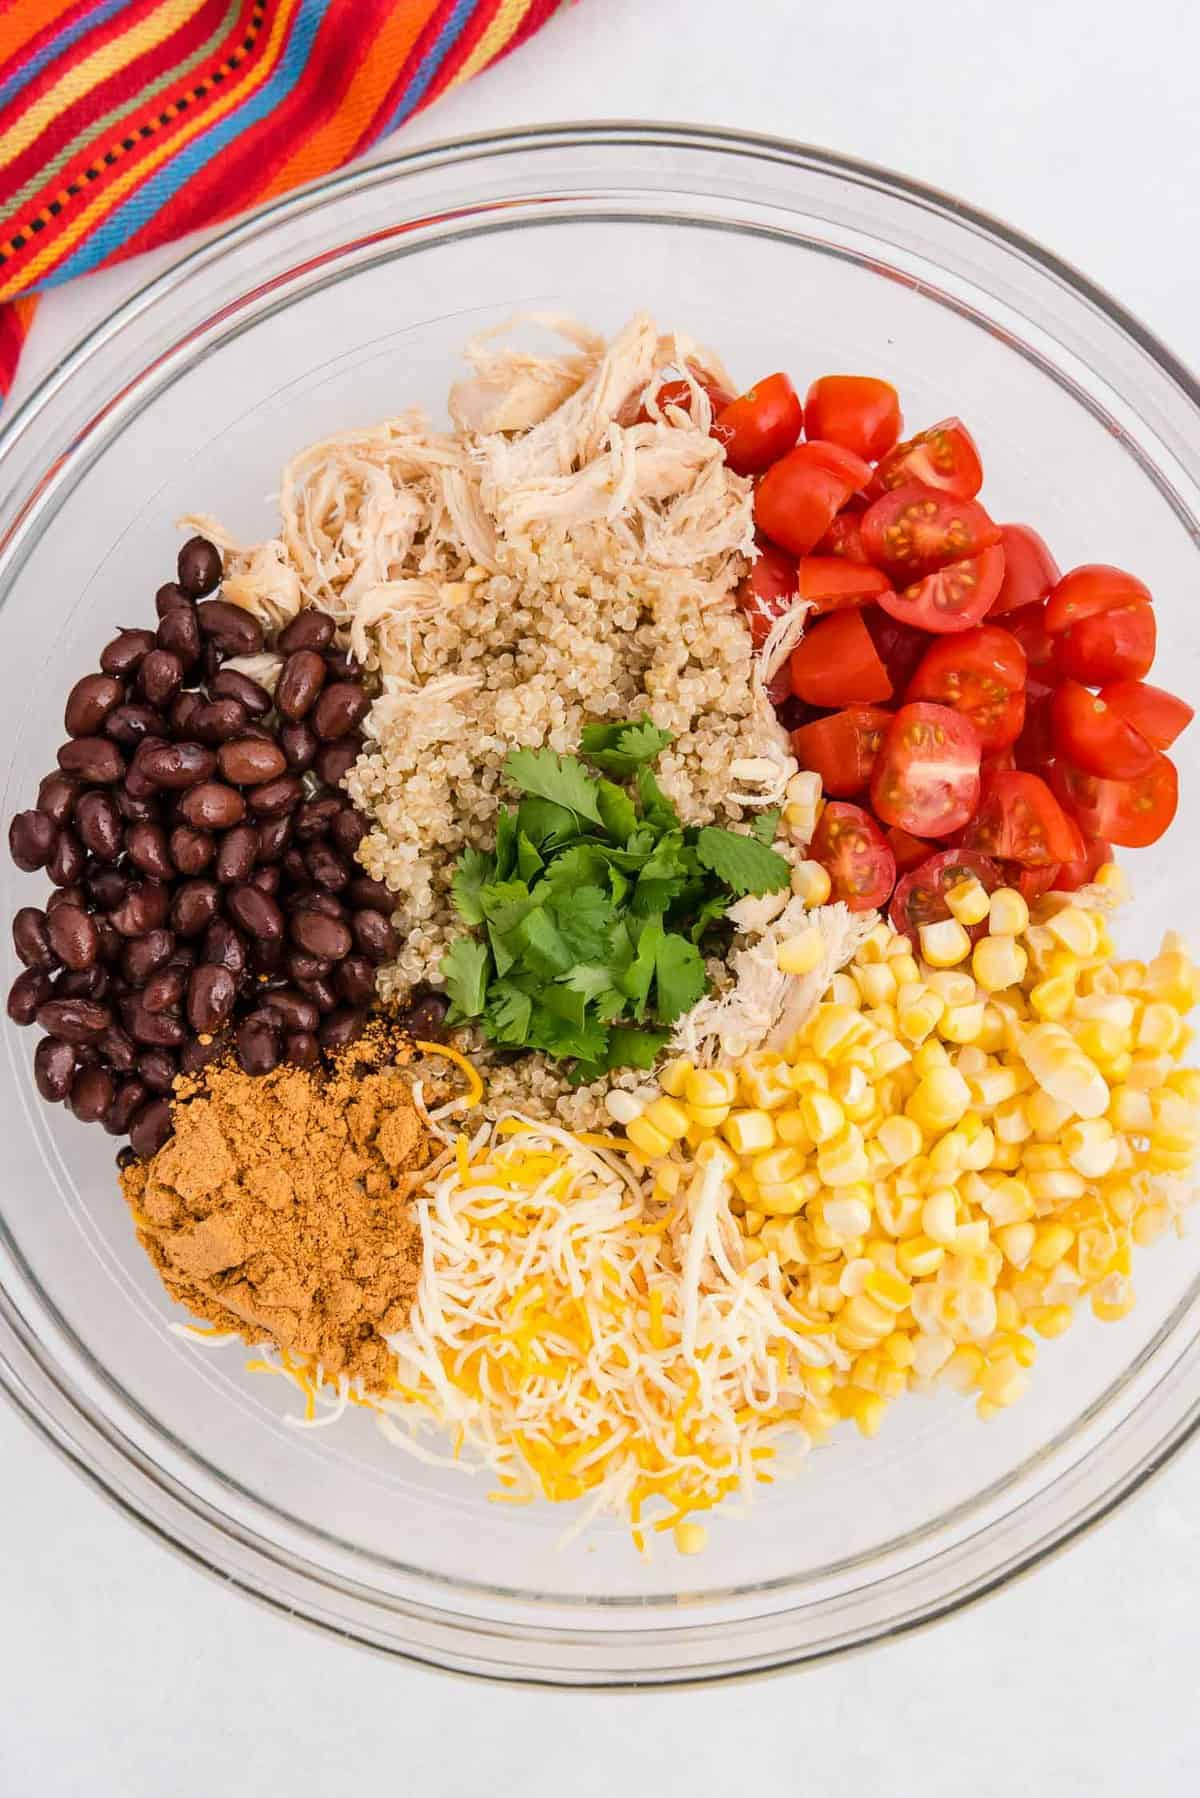 Colorful ingredients in a glass bowl: quinoa, chicken, black beans, tomatoes, and more.